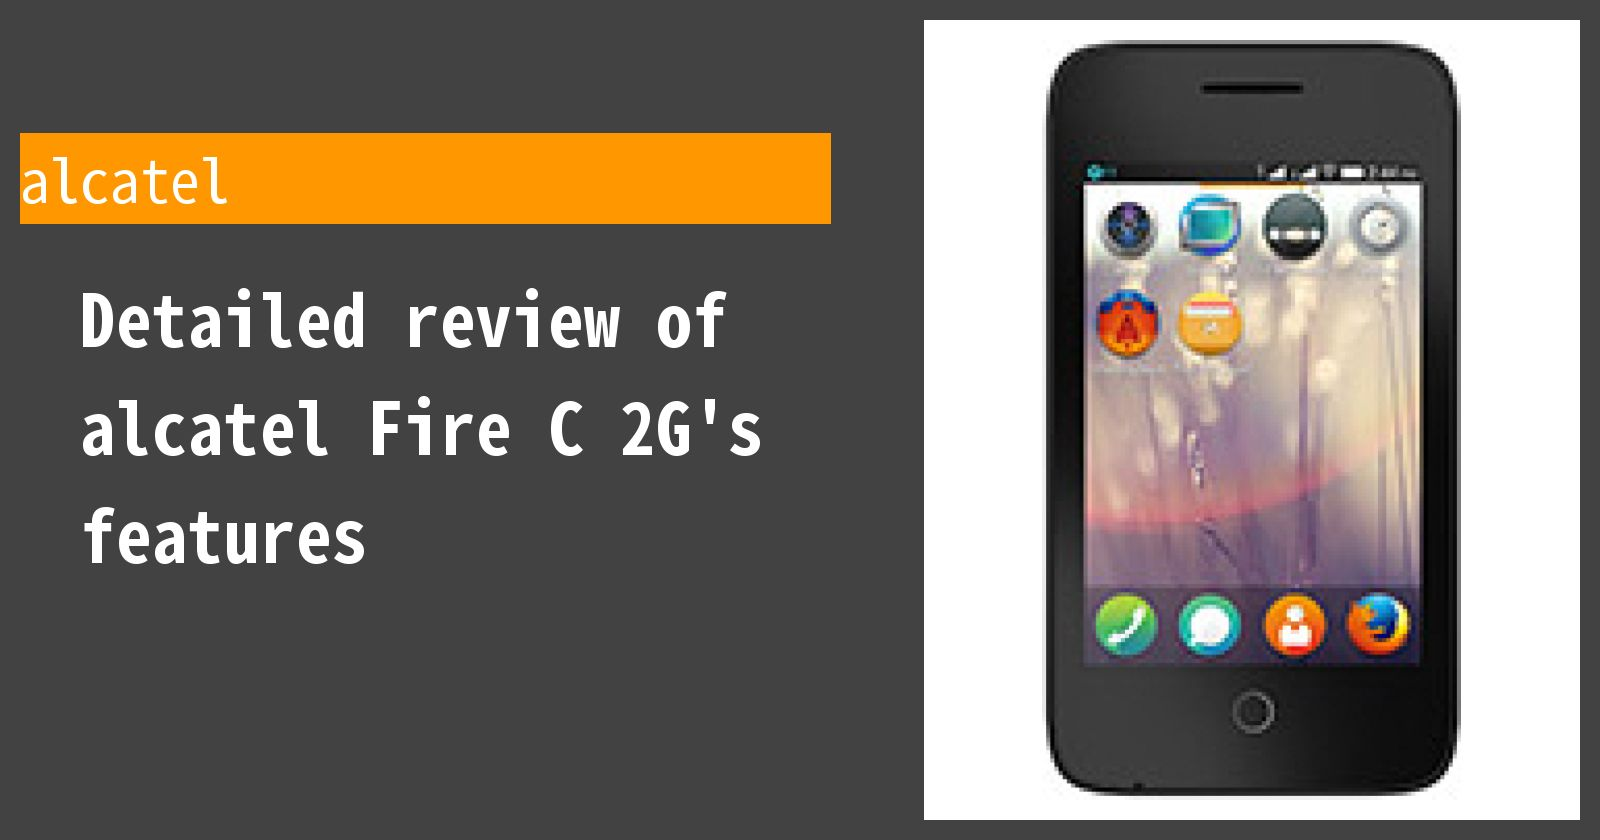 Detailed review of alcatel Fire C 2G's features